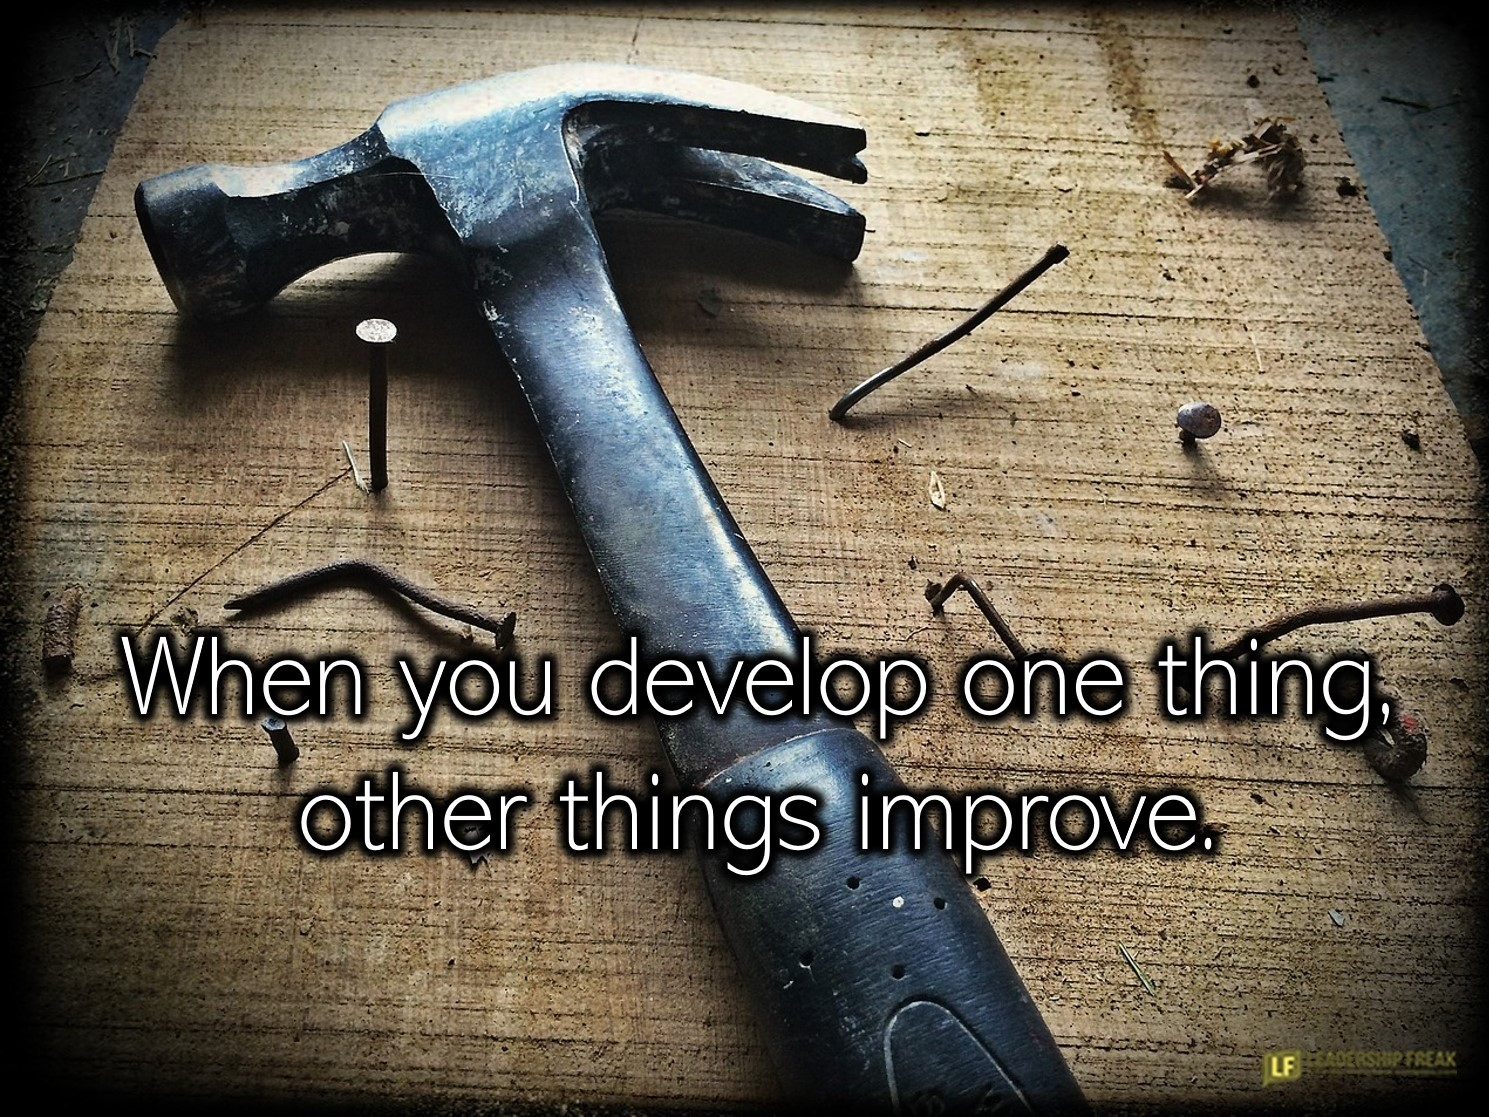 Hammer and nails.  When you develop one thing, other things improve.